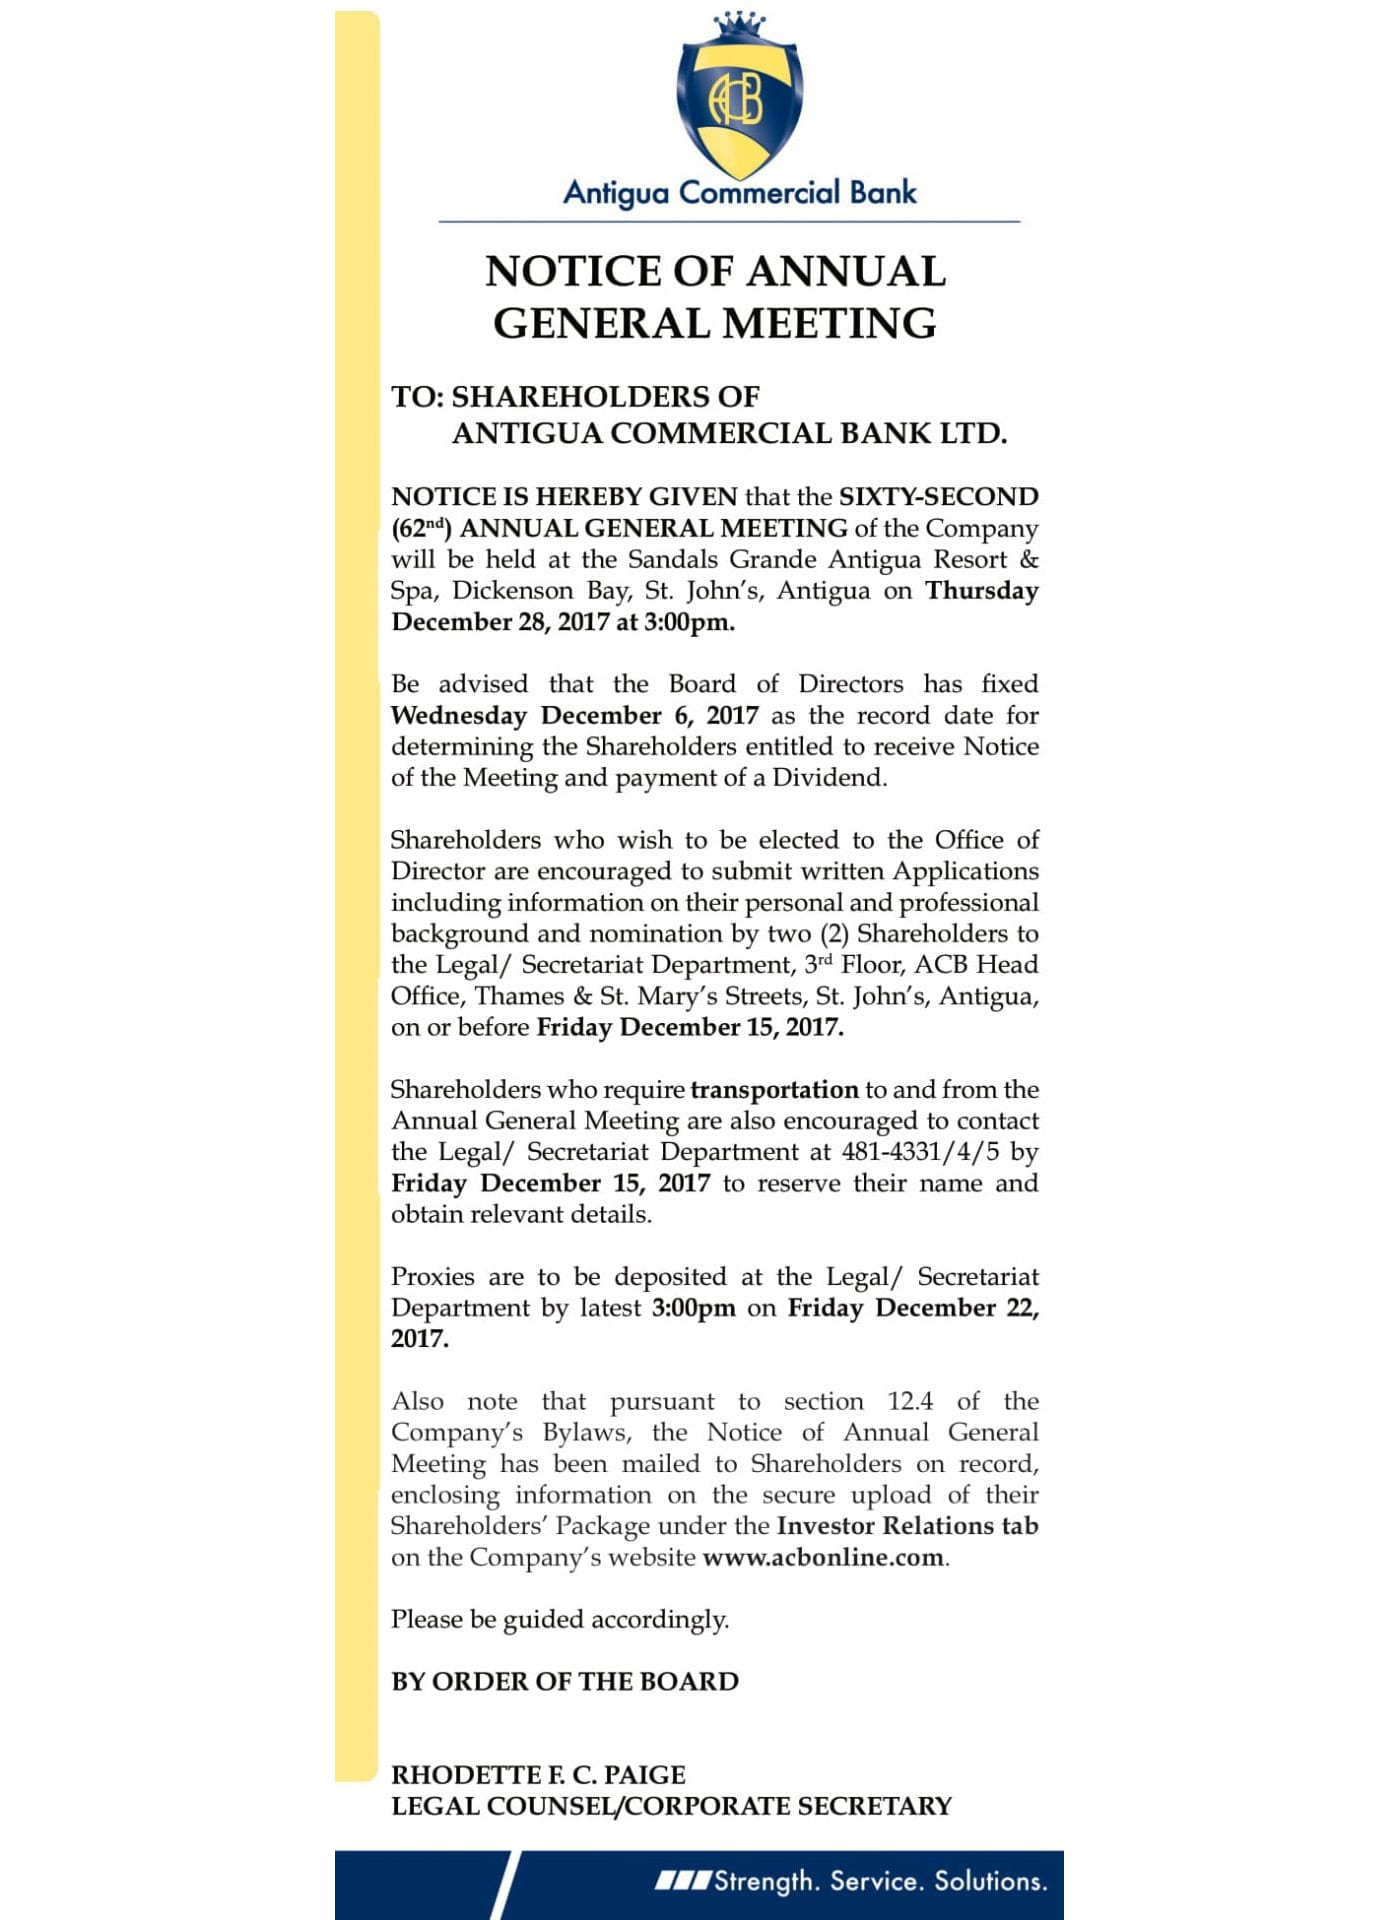 Notice_of_62nd_Annual_General_Meeting-1-scaled_v3